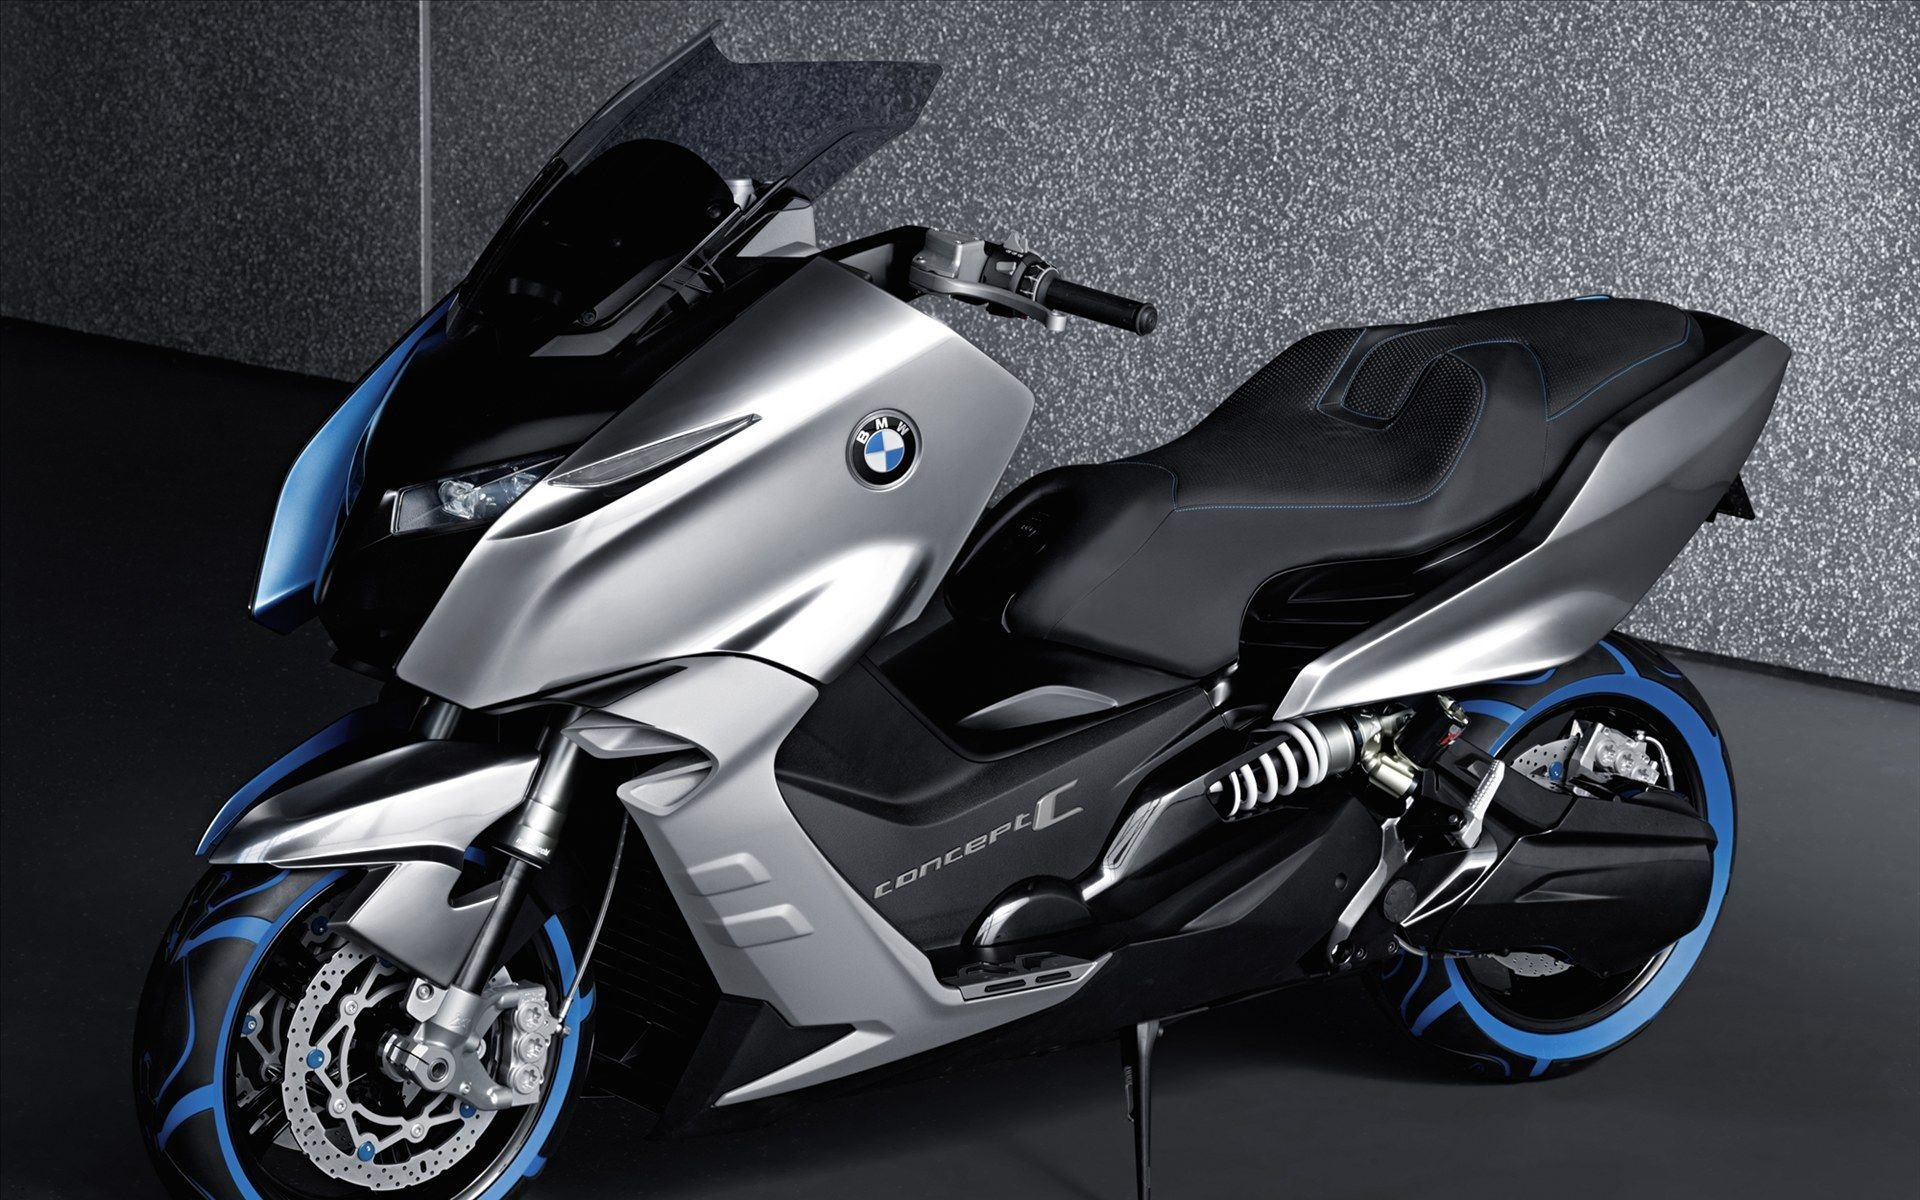 Latest Bike Wallpapers For Mobile Free Download All Wallpapers Free Download